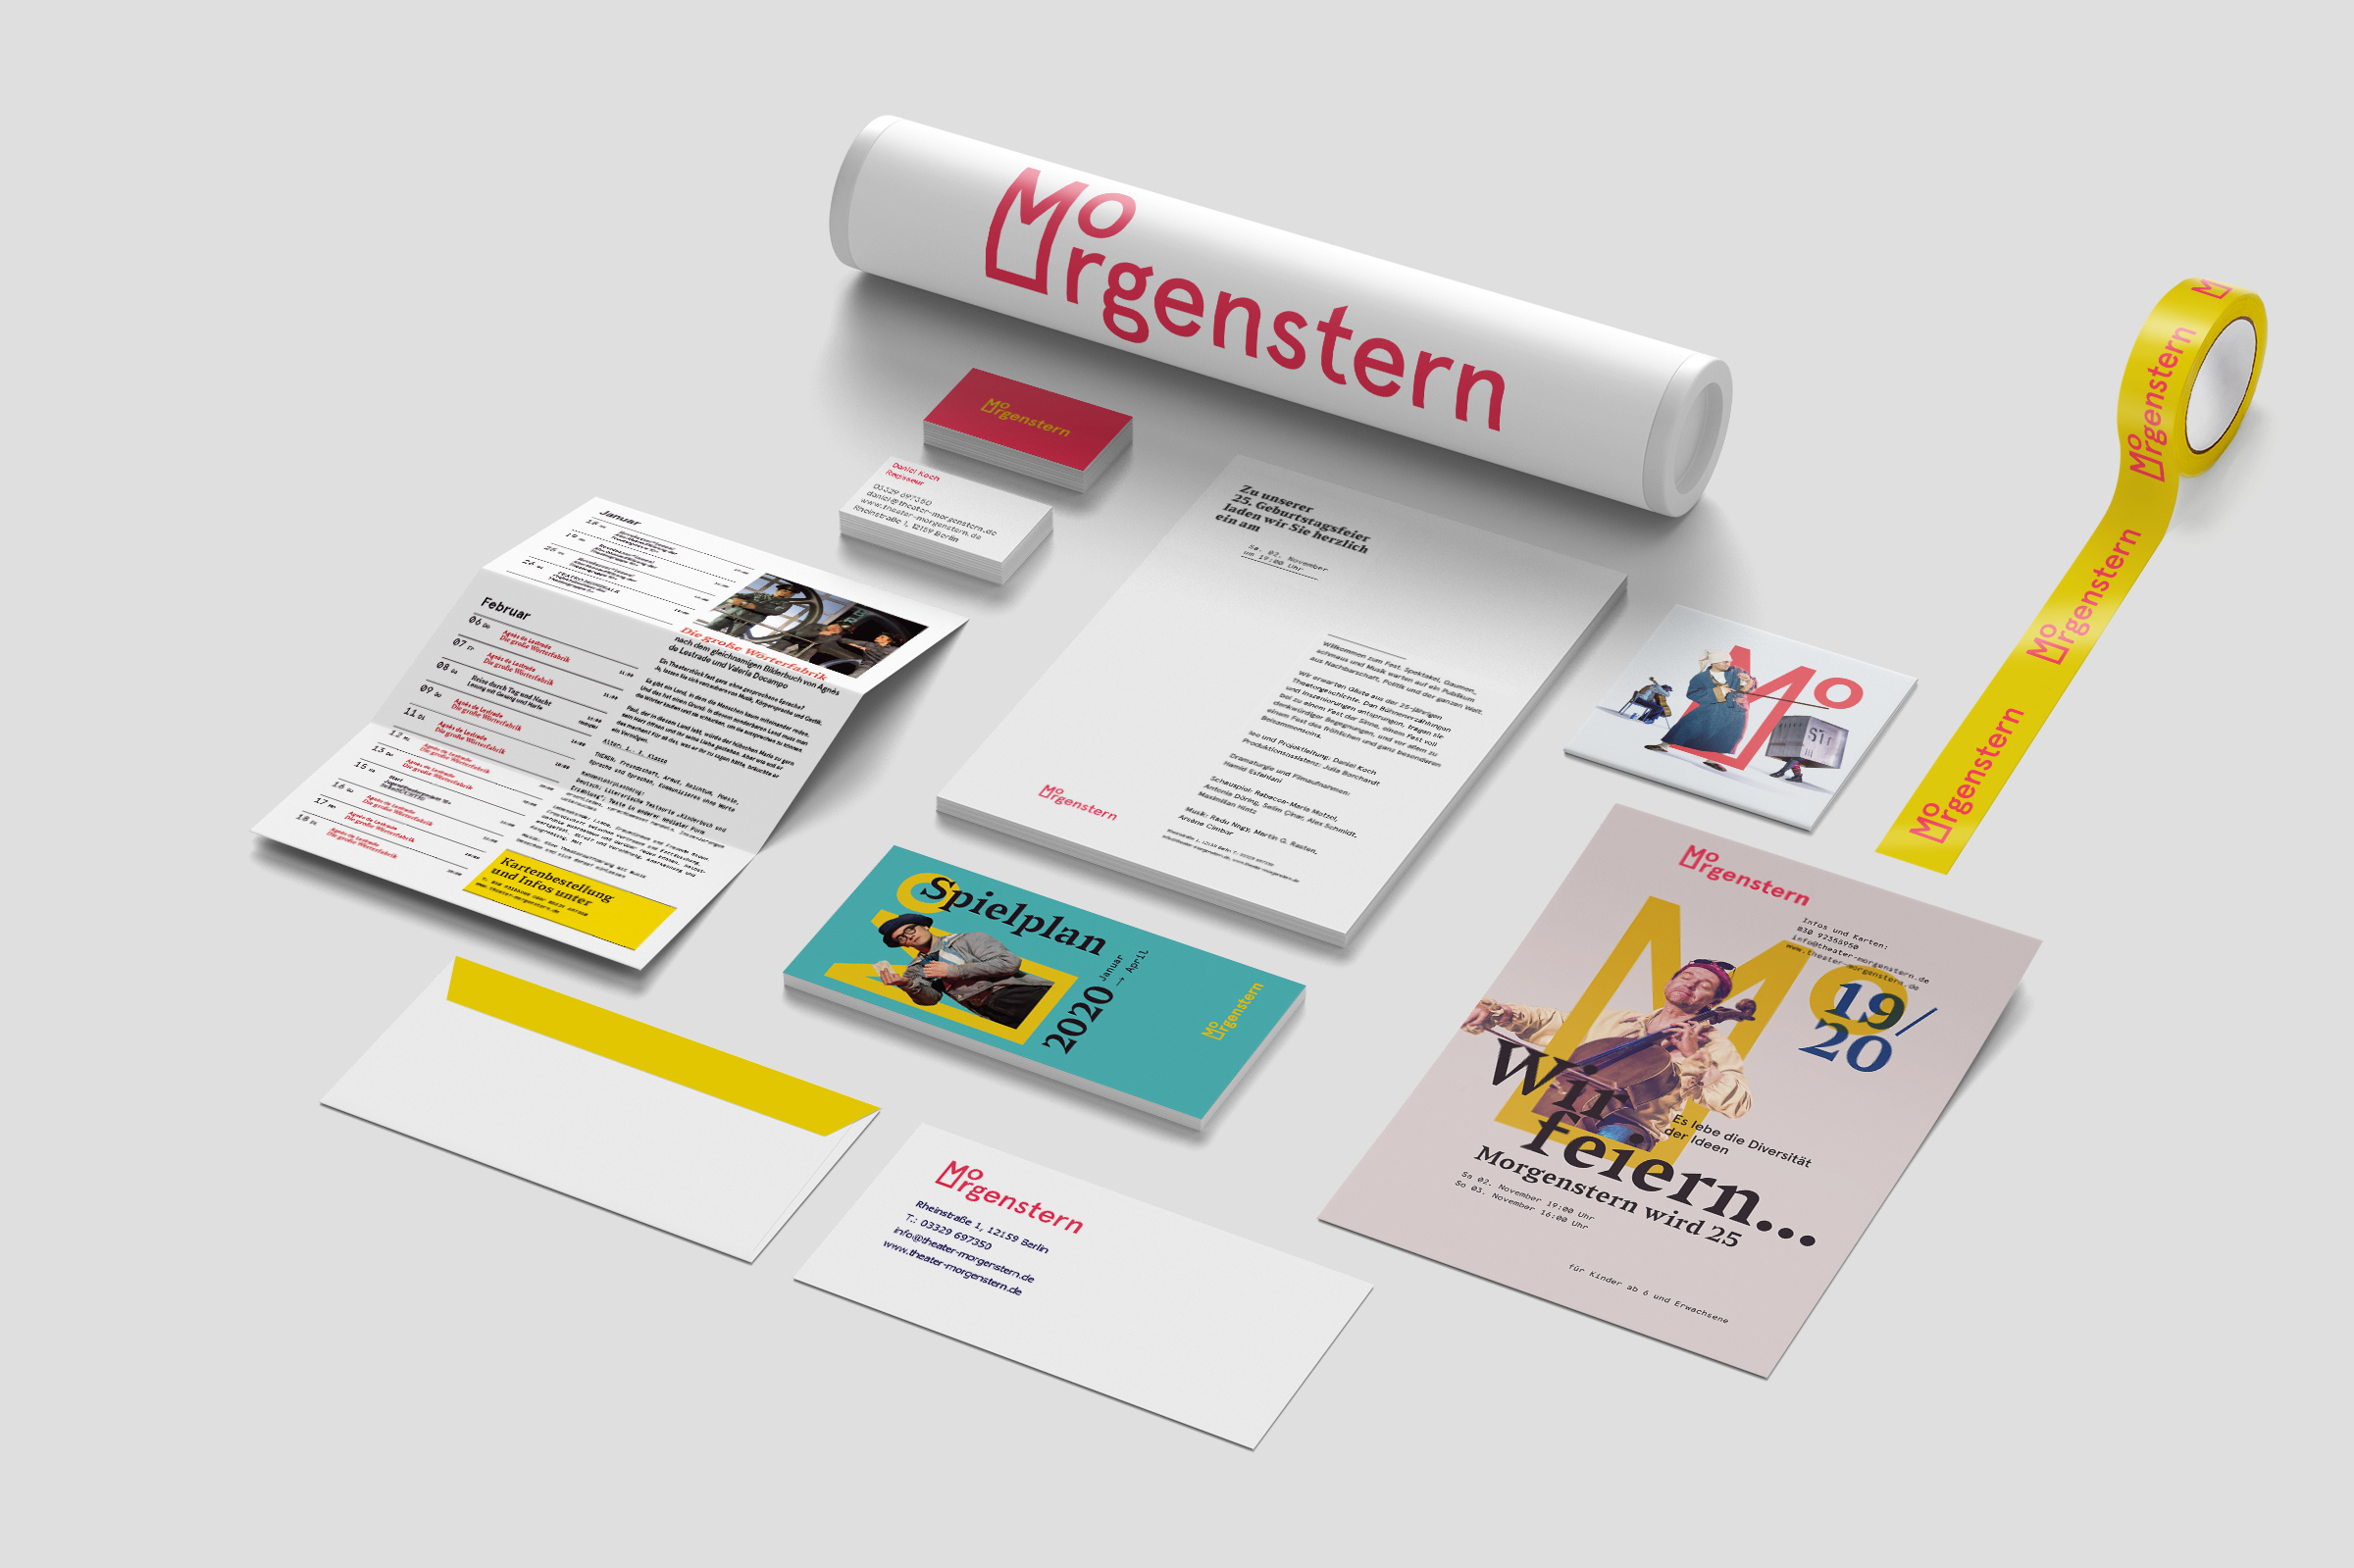 Branding Morgenstern Theatre